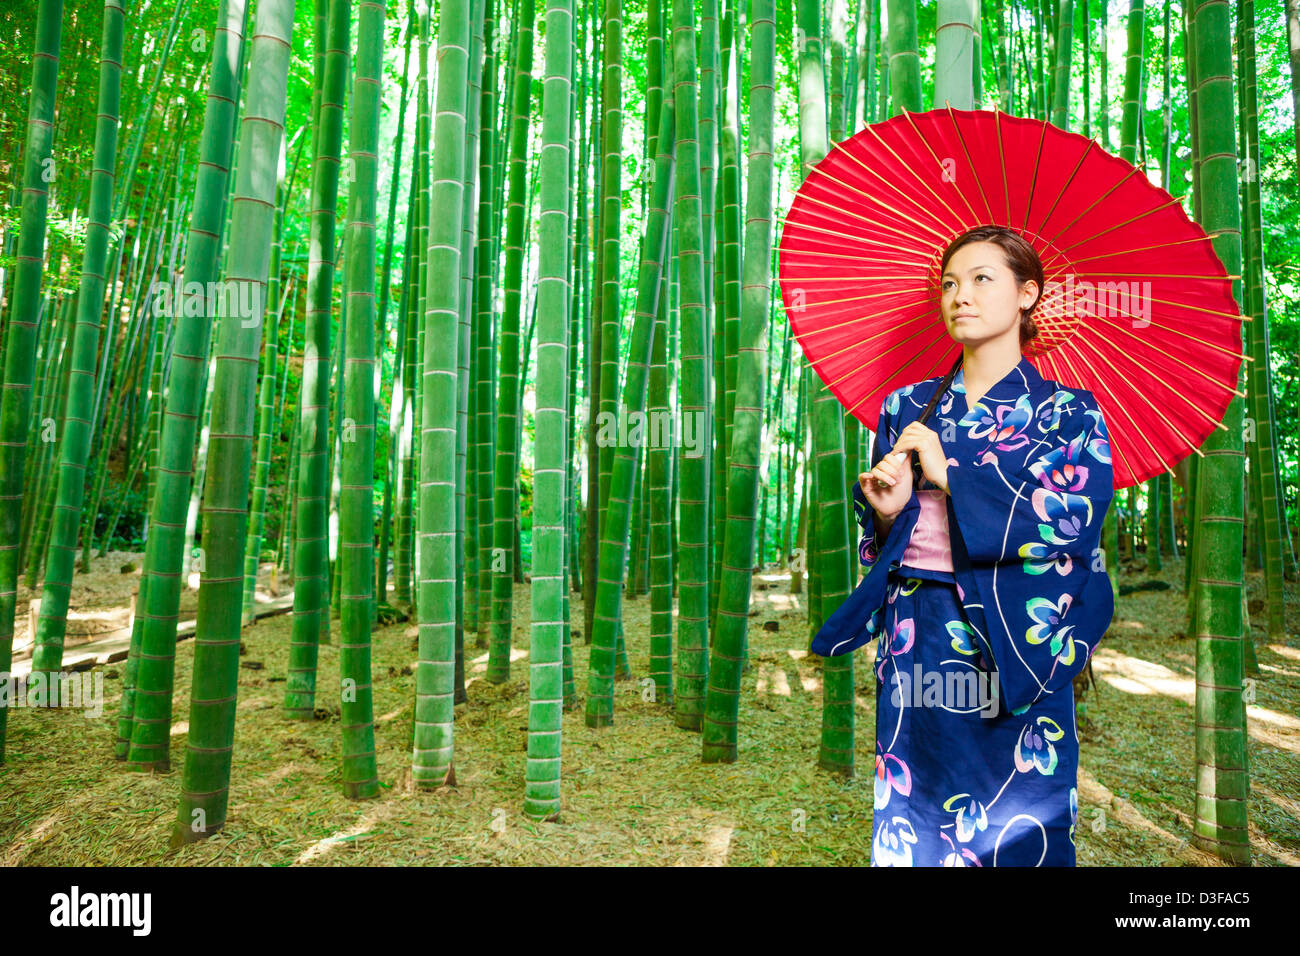 Japanese woman wearing kimono and holding red parasol stands in bamboo grove Stock Photo